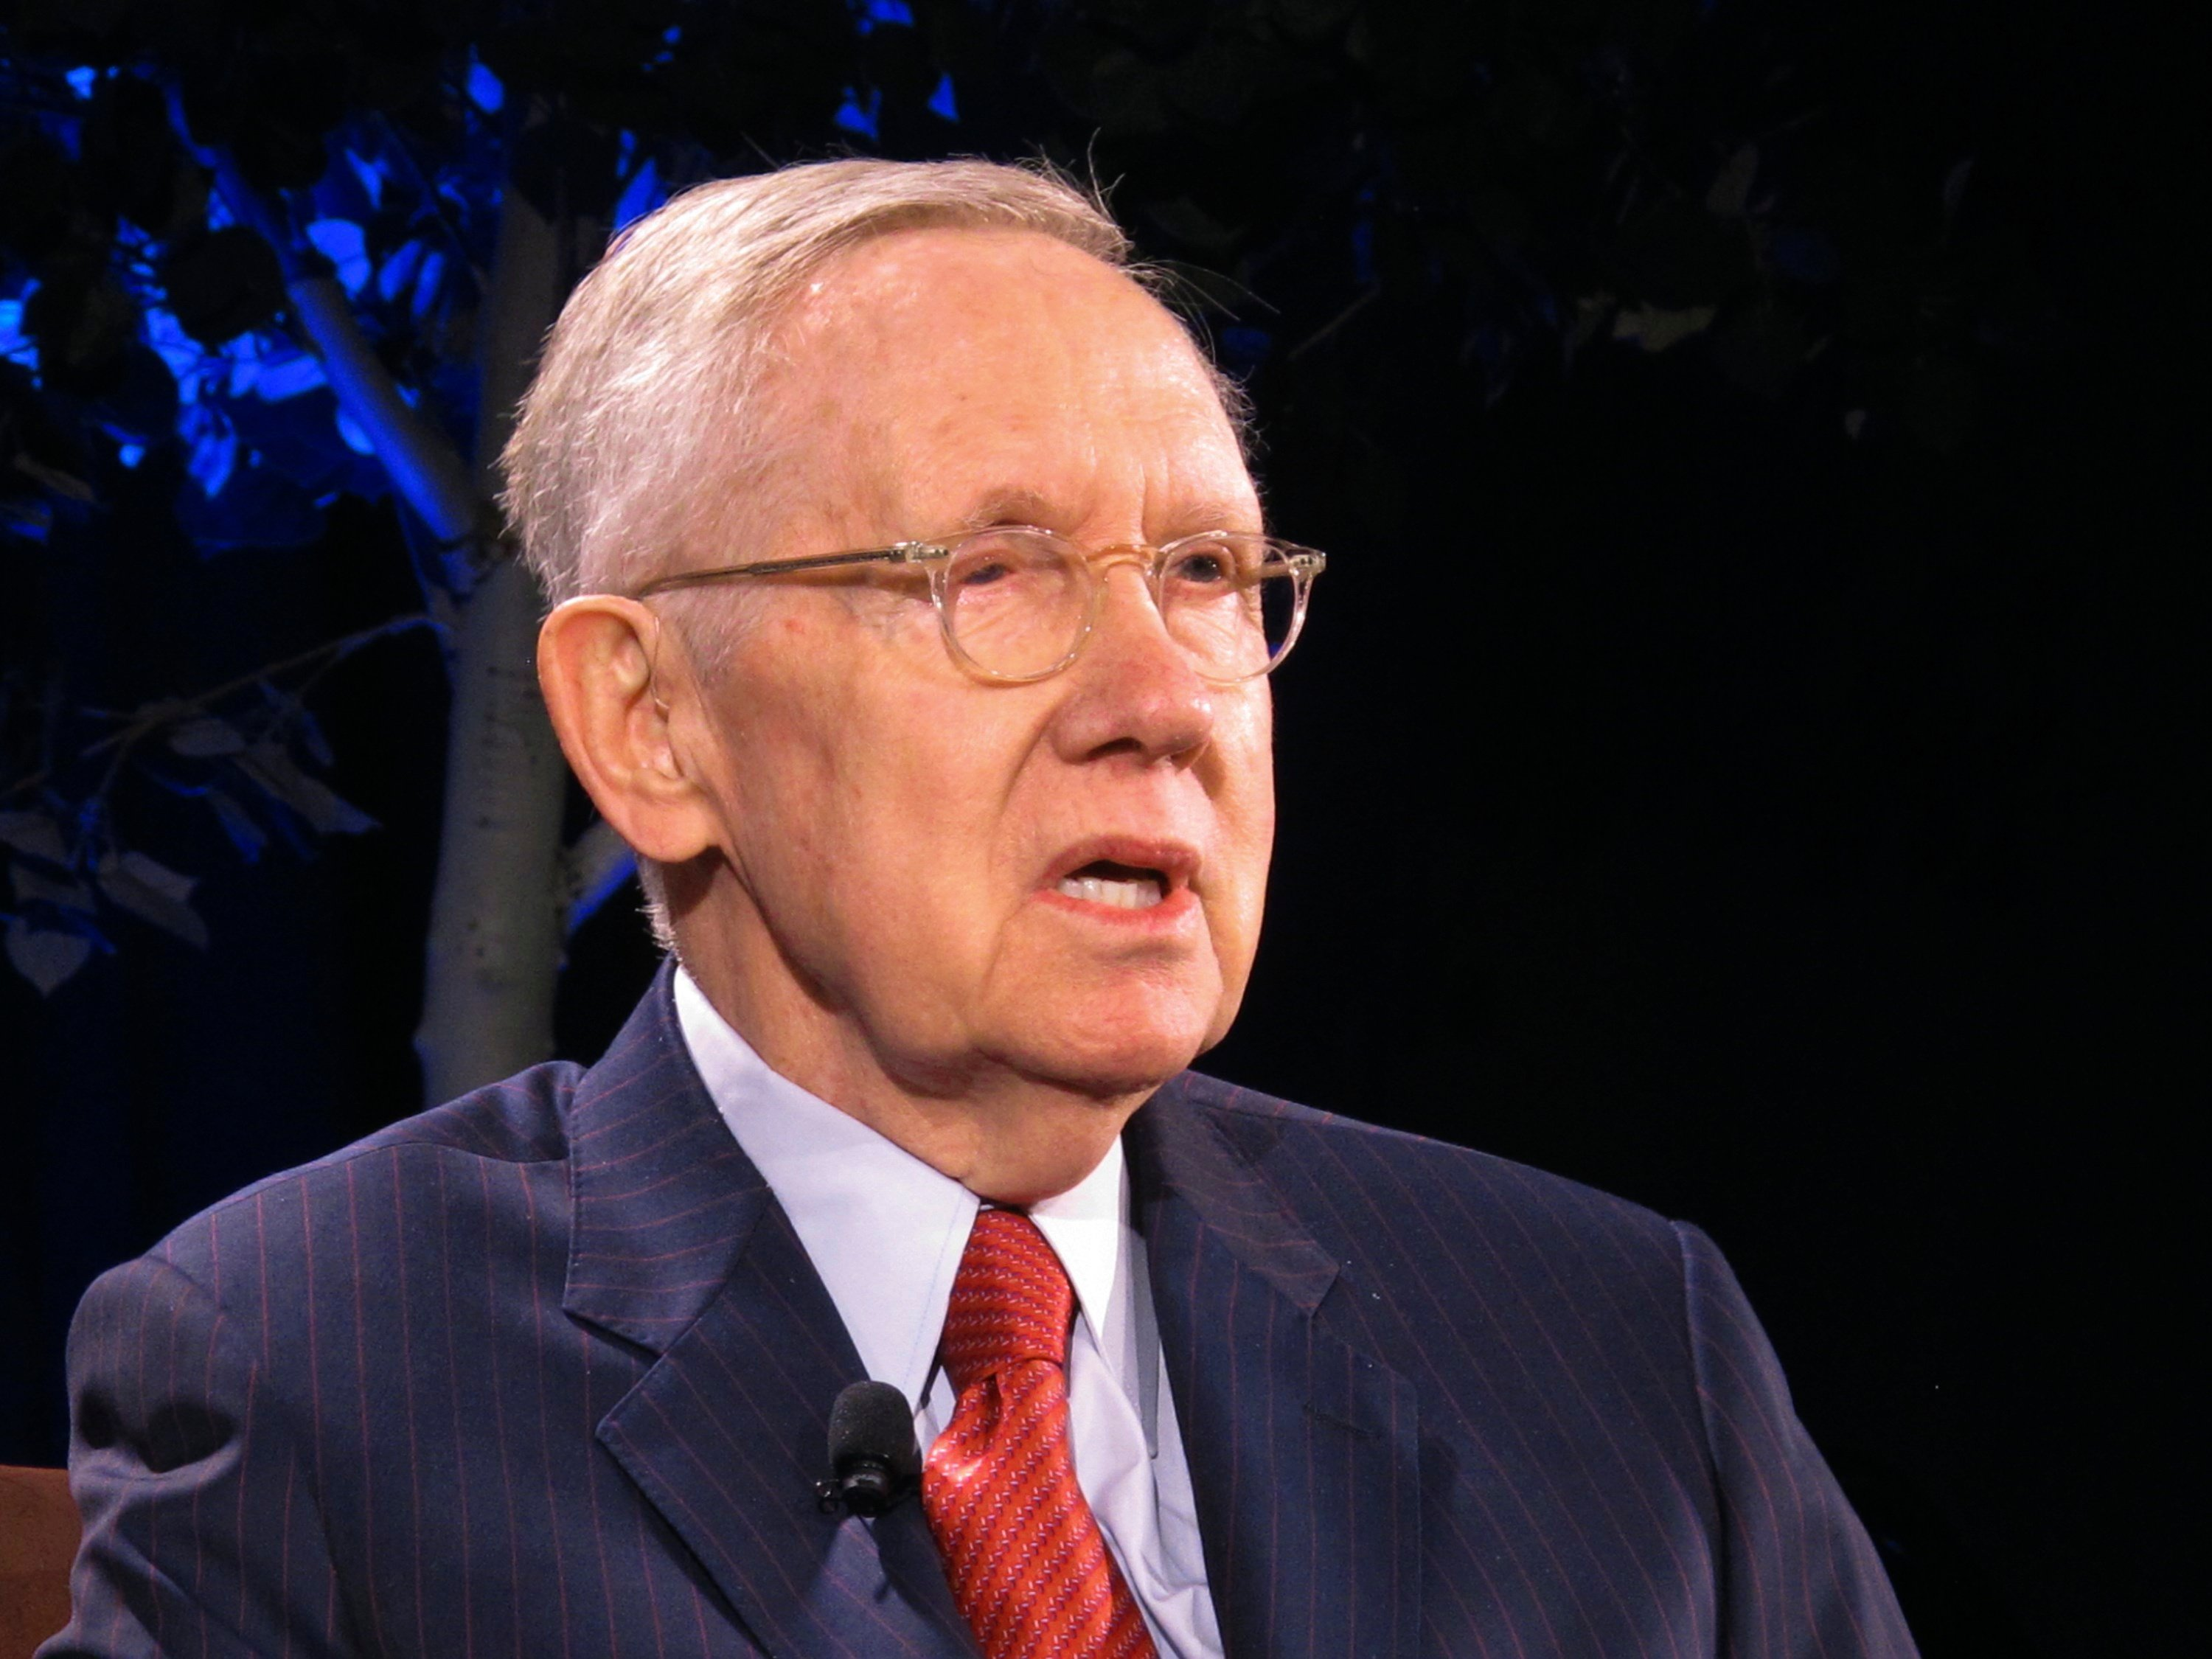 Former Senator Harry Reid Diagnosed With Pancreatic Cancer